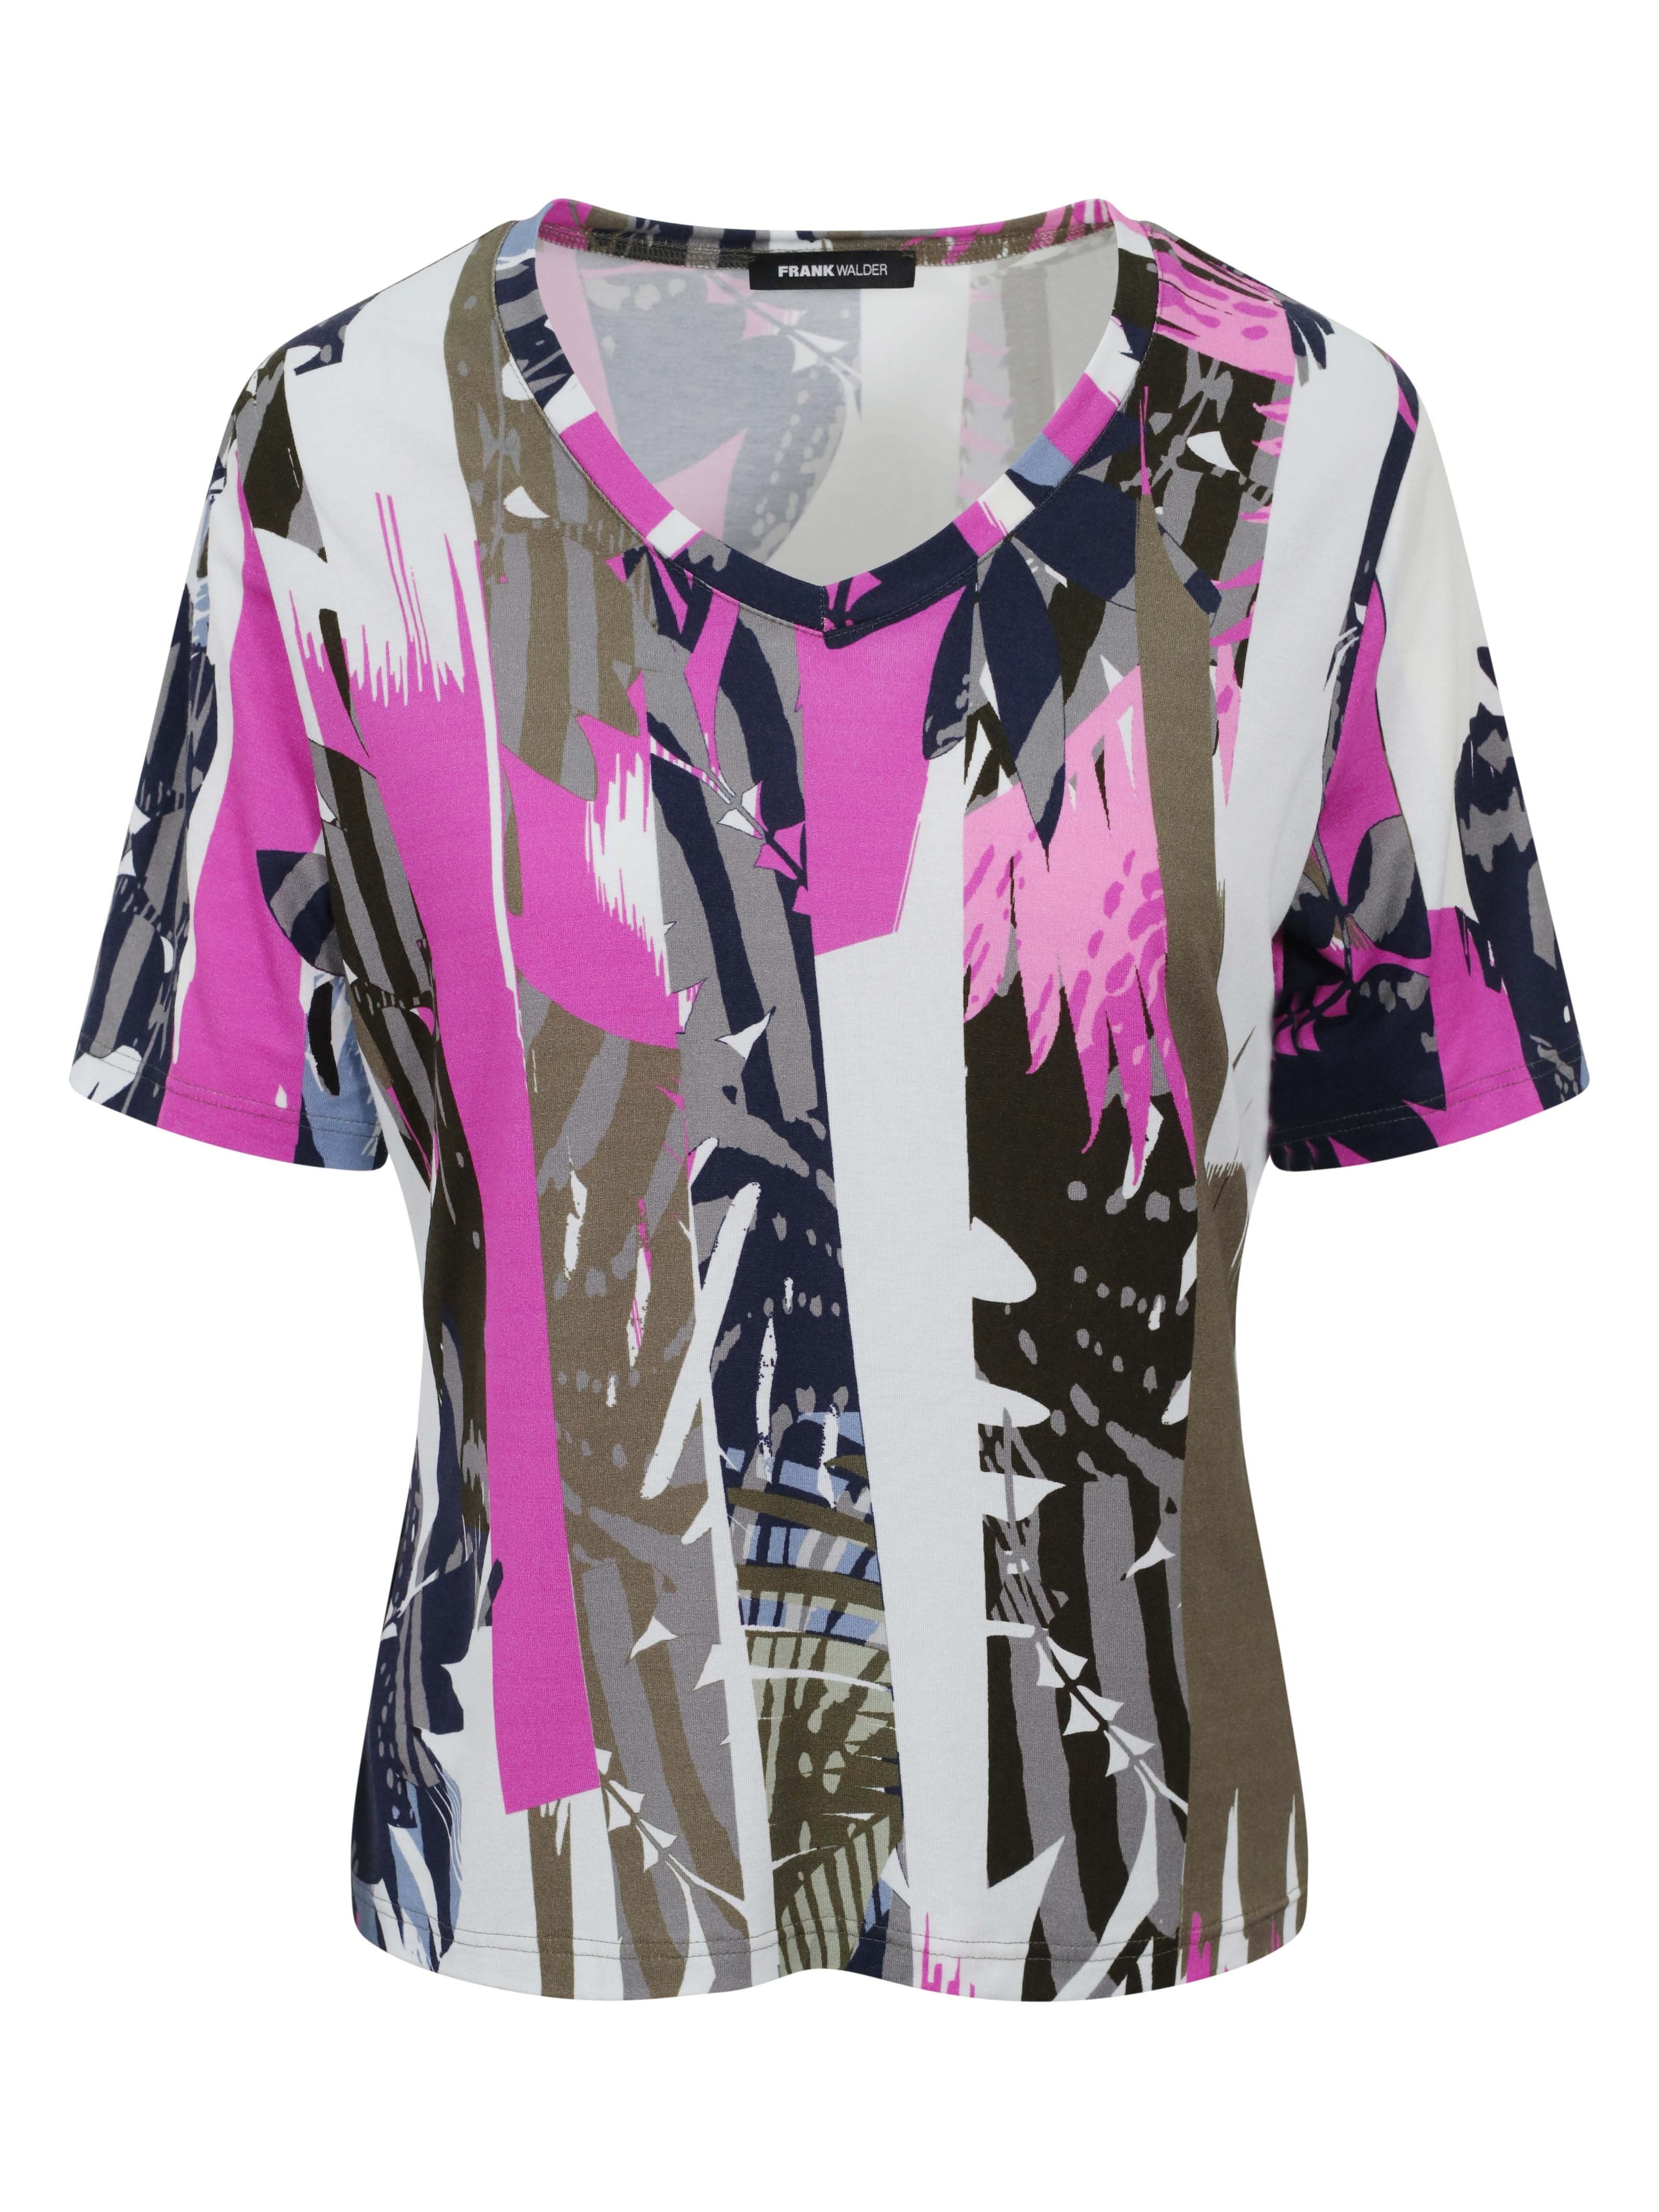 Frank Walder White/Khaki/Fuschia Printed Short Sleeve V-neck Jersey Top